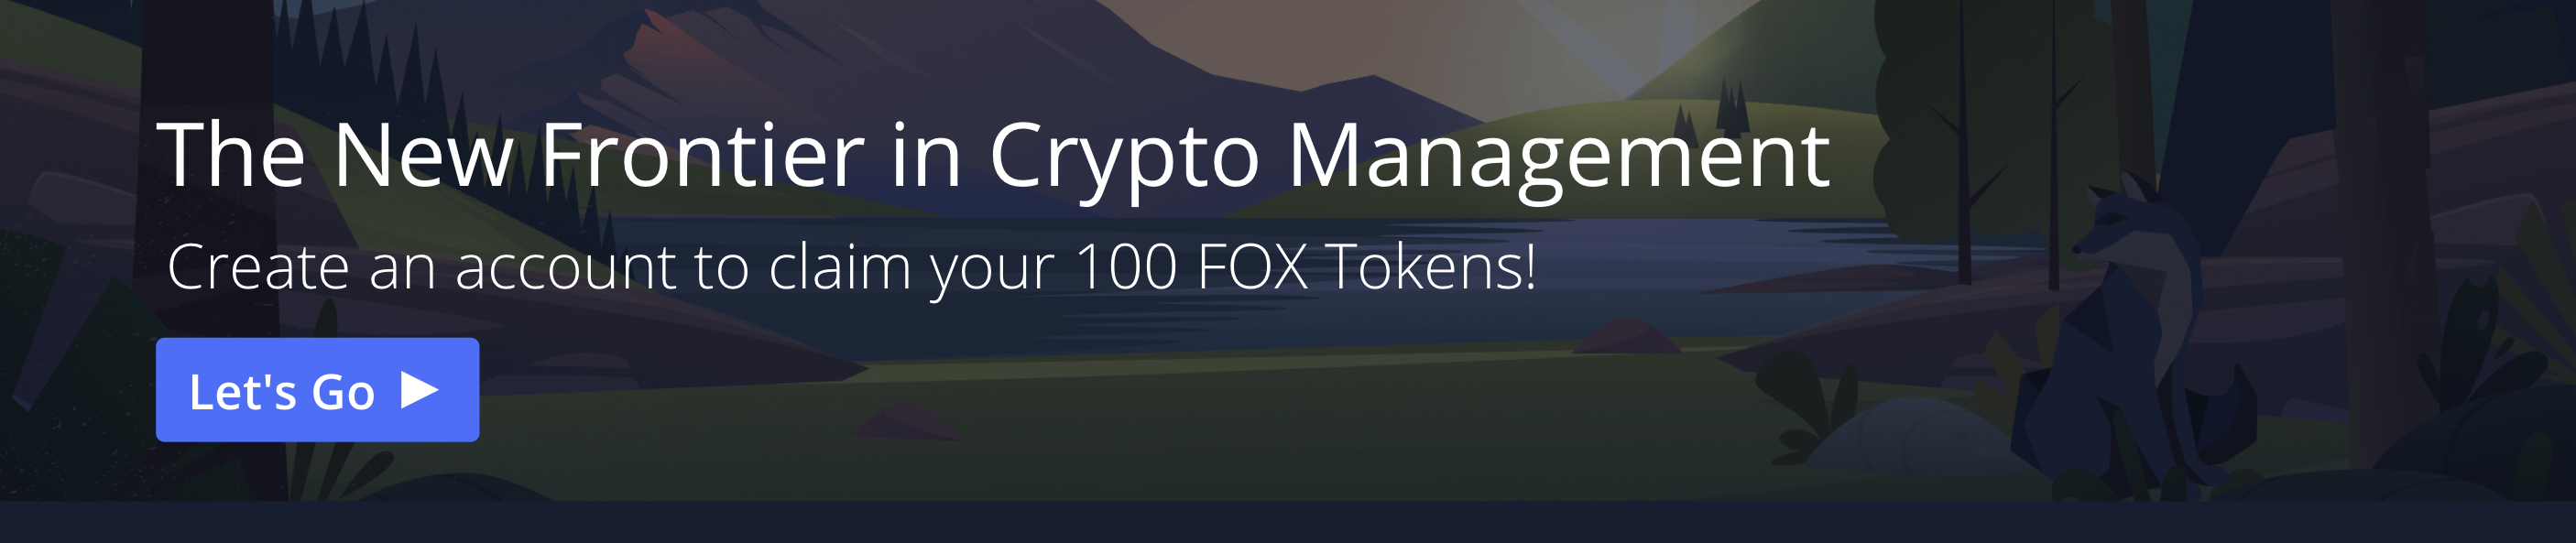 The new frontier in crypto. Create a ShapeShift account to claim your 100 fox tokens at ShapeShift.com